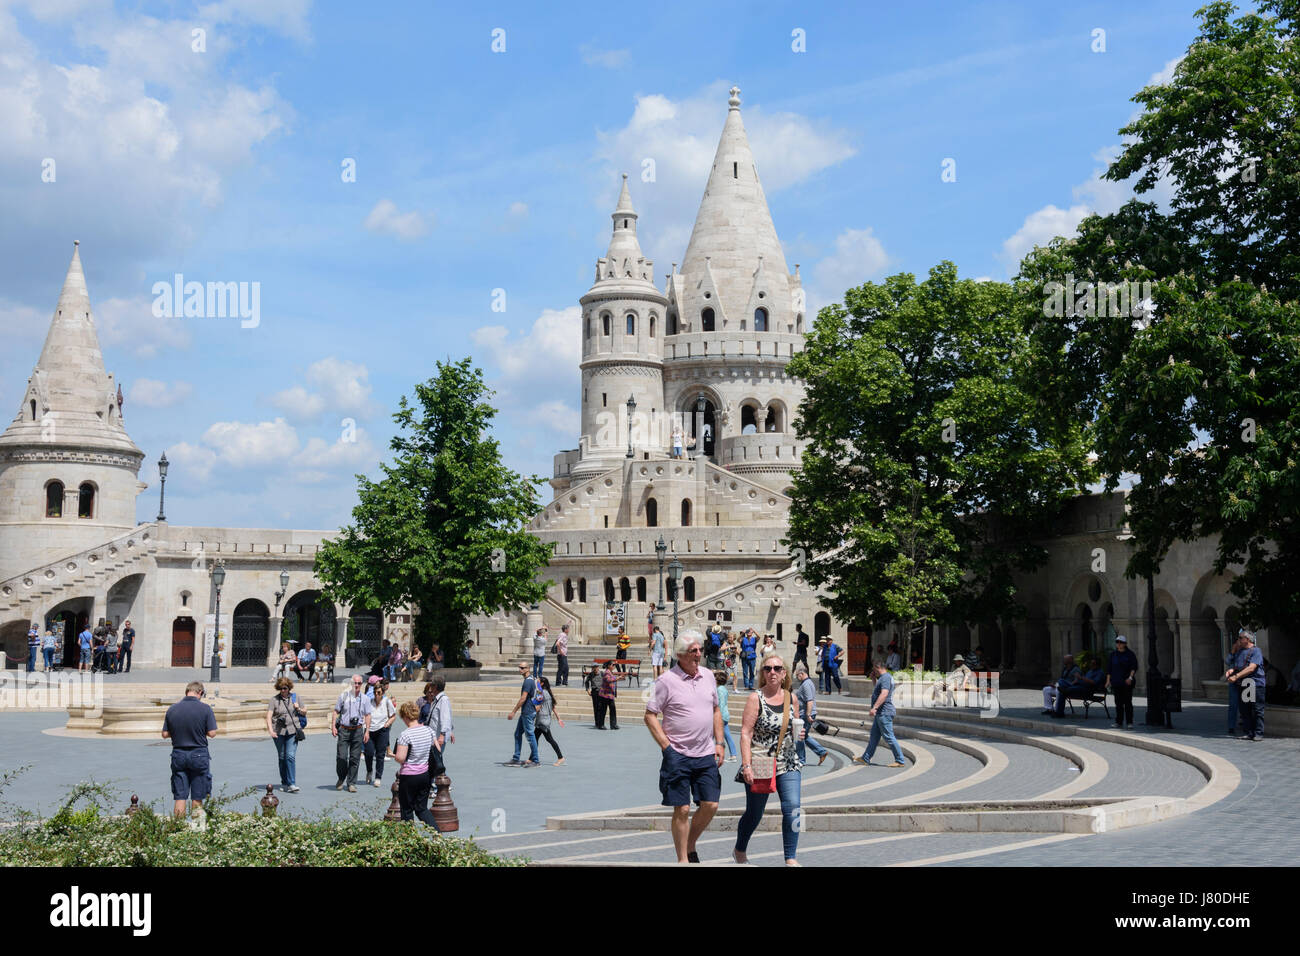 The Fisherman's Bastion in Budapest, Hungary. - Stock Image